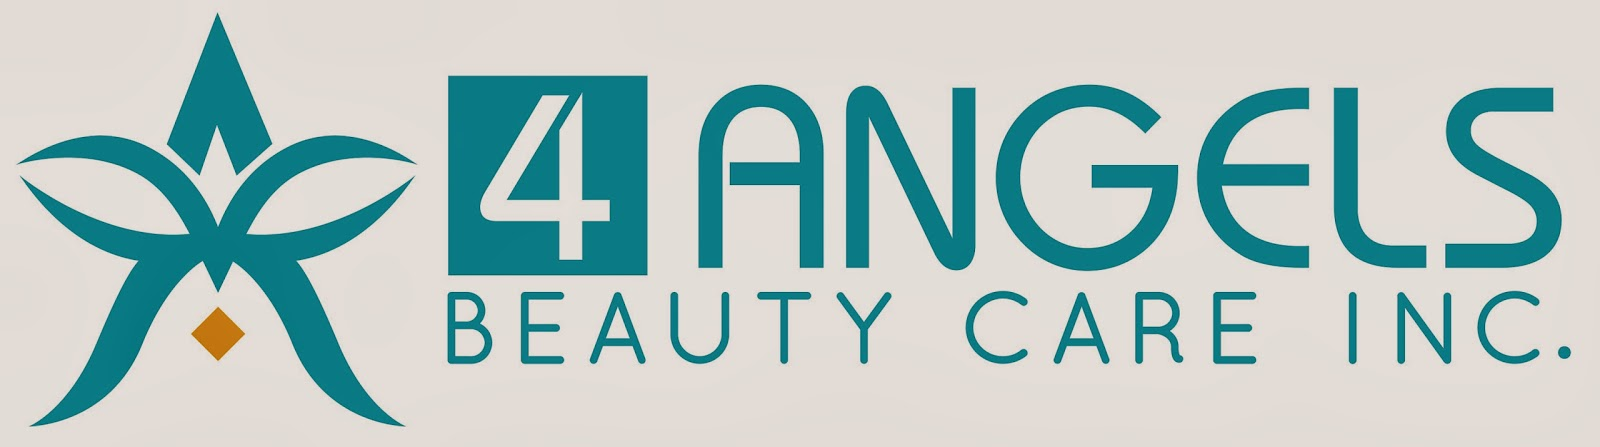 Jenny Lutes: 4 Angels Beauty Care